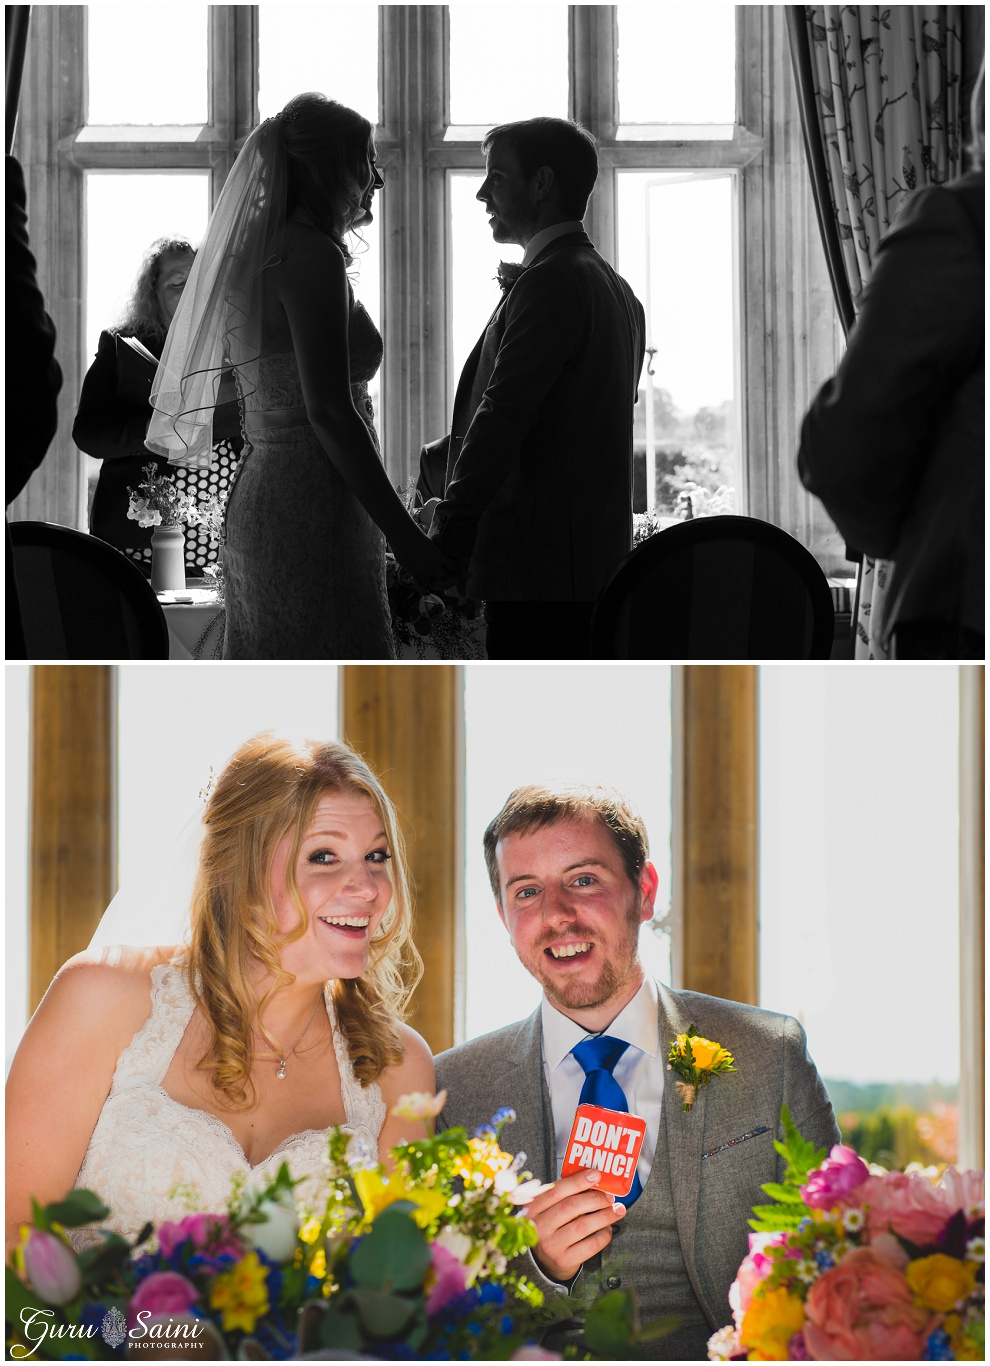 Wedding-Photography-Eynsham Hall-Oxford-London-Guru-Saini-Photography